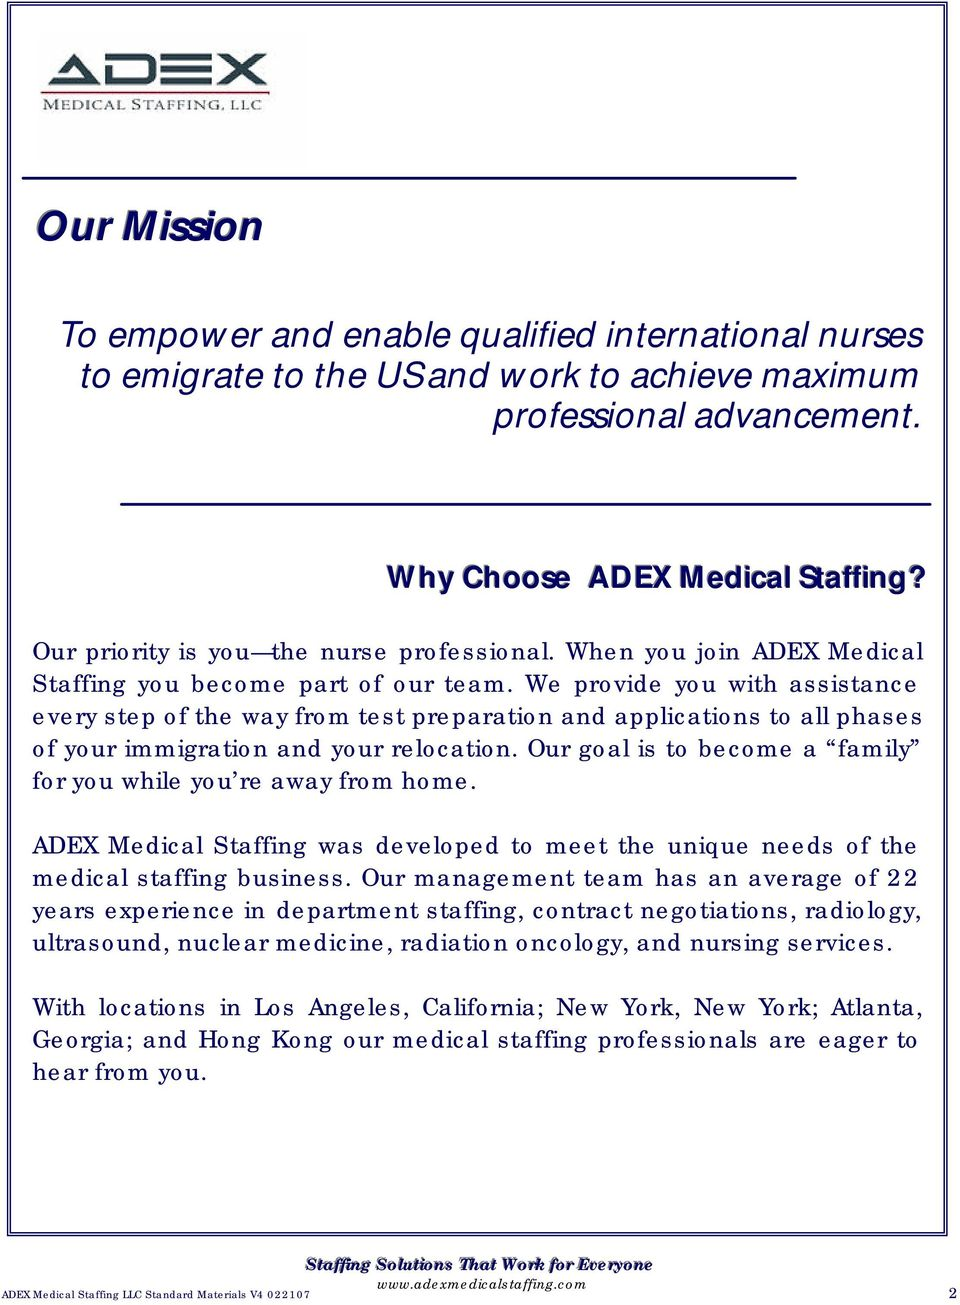 Staffing Solutions that work for everyone  ADEX Medical Staffing LLC